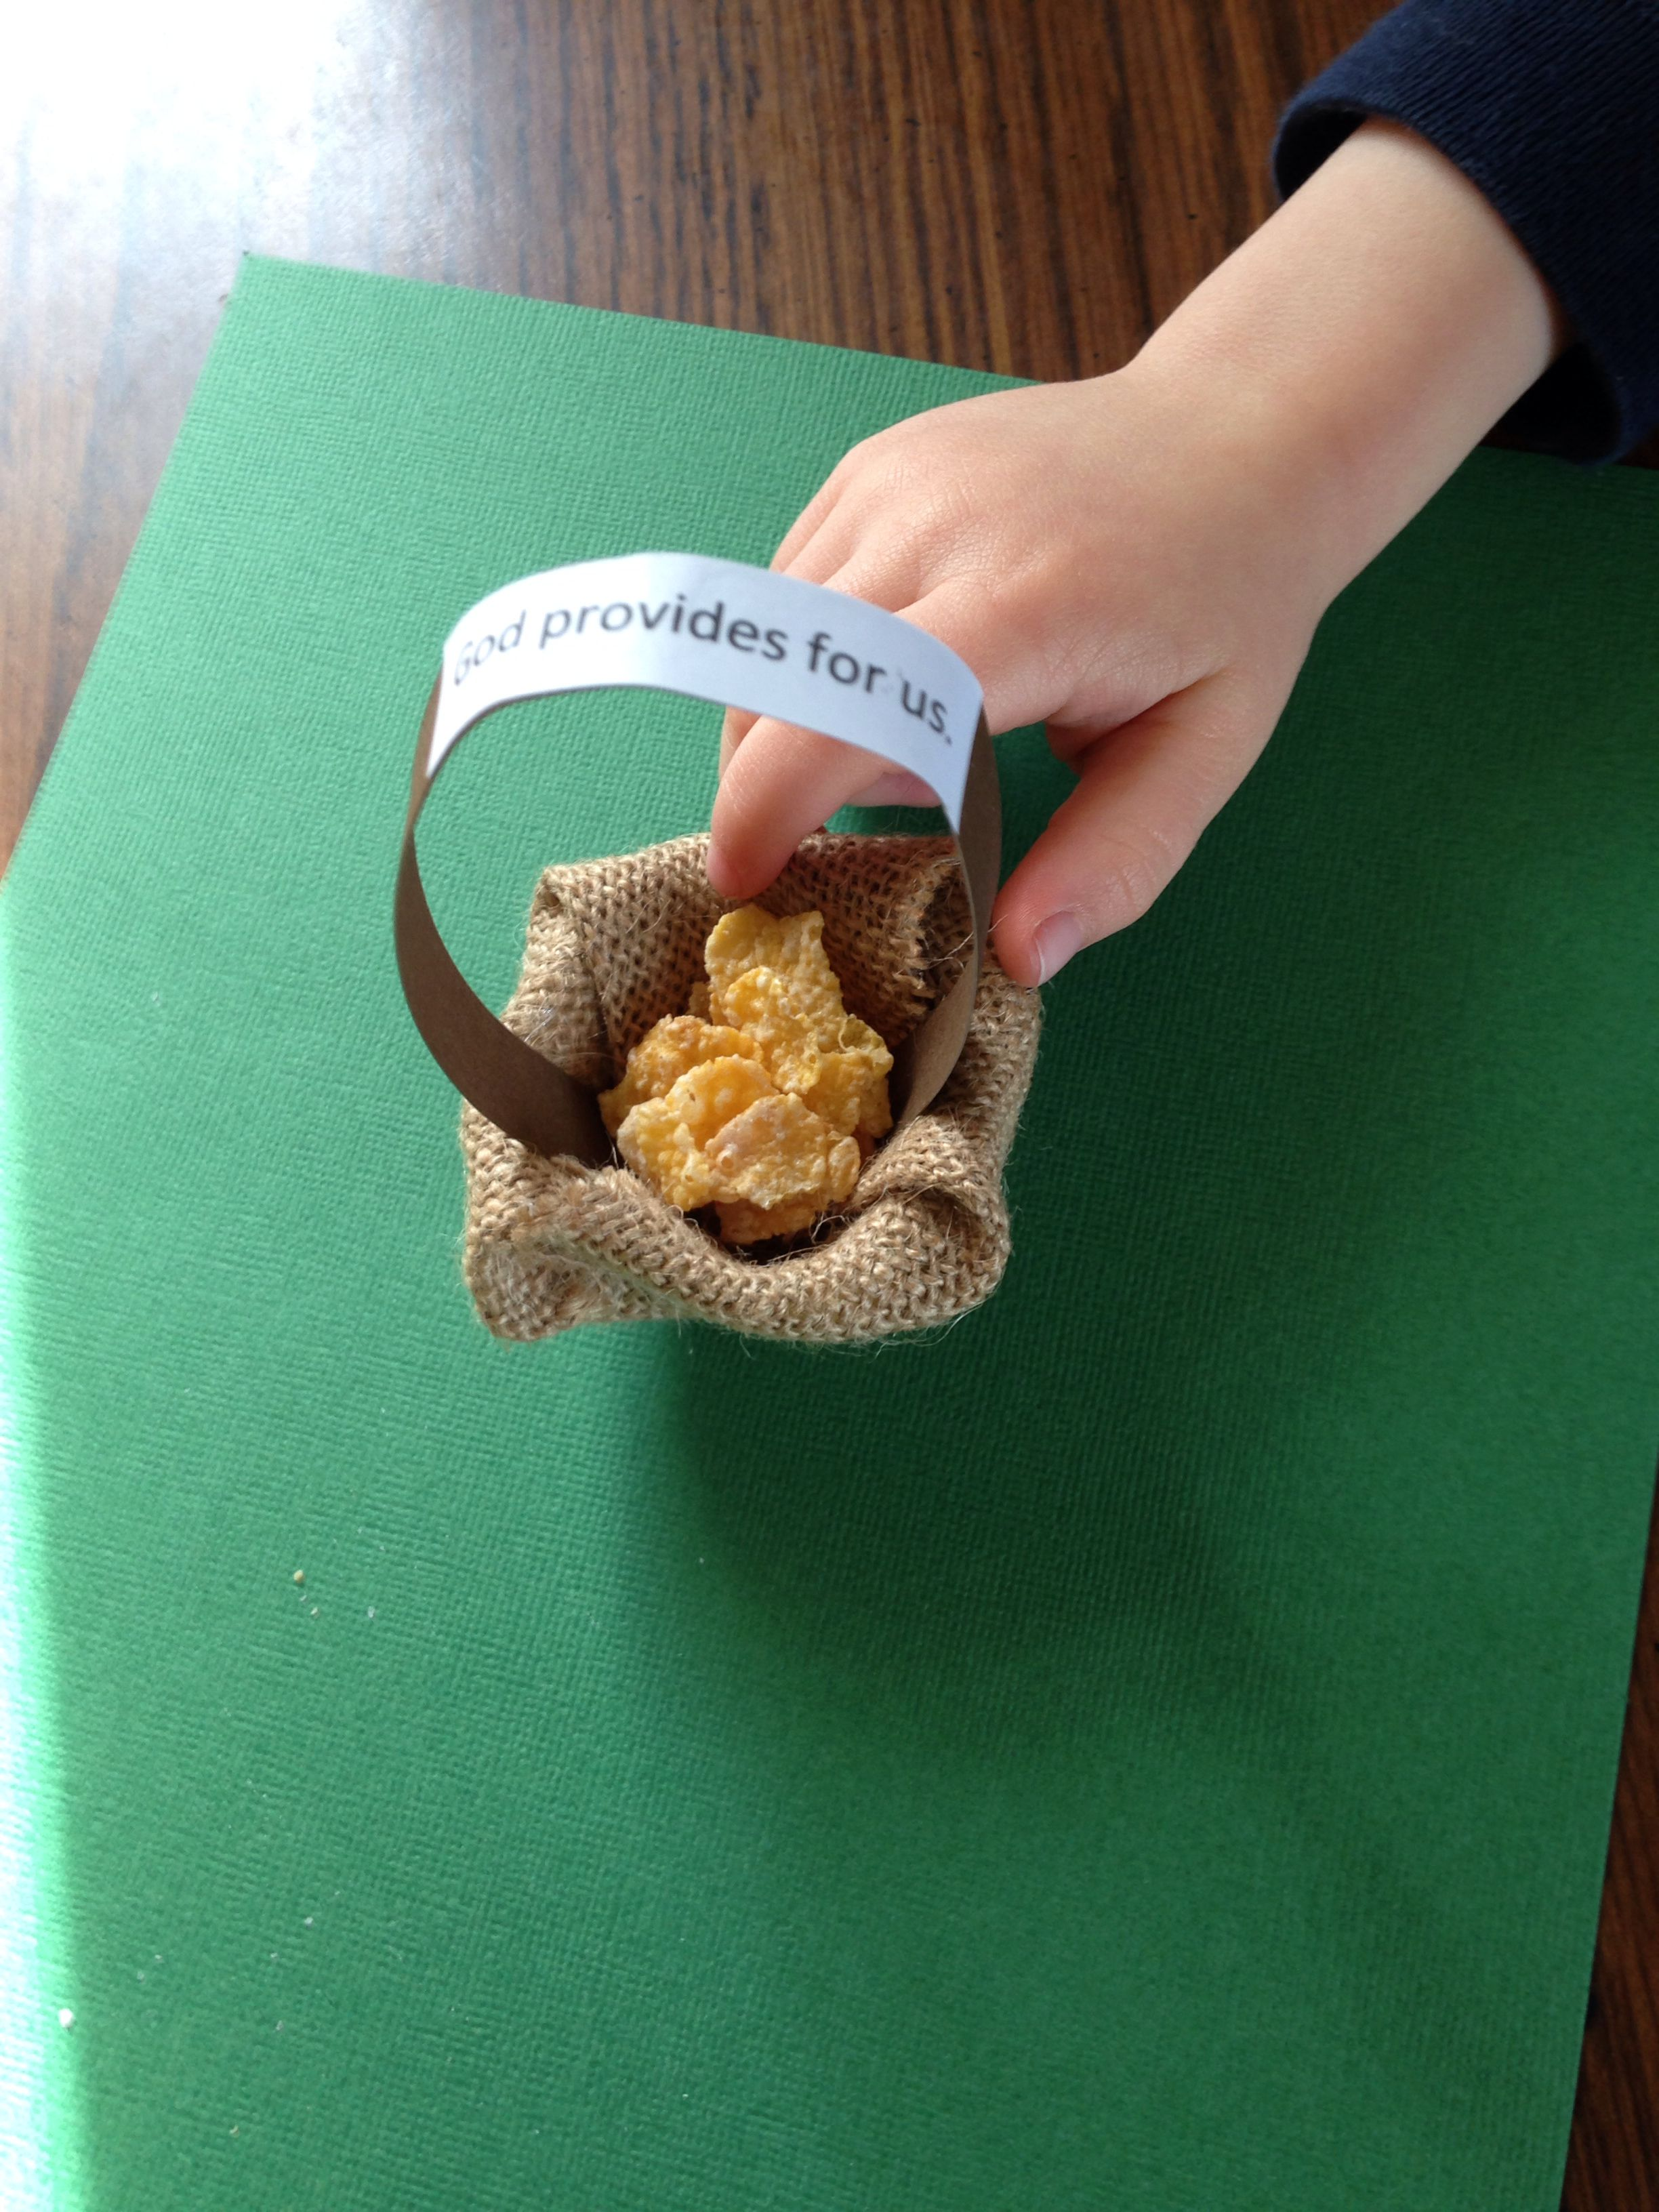 God Provides Manna Craft And Activity I Made Baskets Out Of Egg Carton Burlap And Paper Have